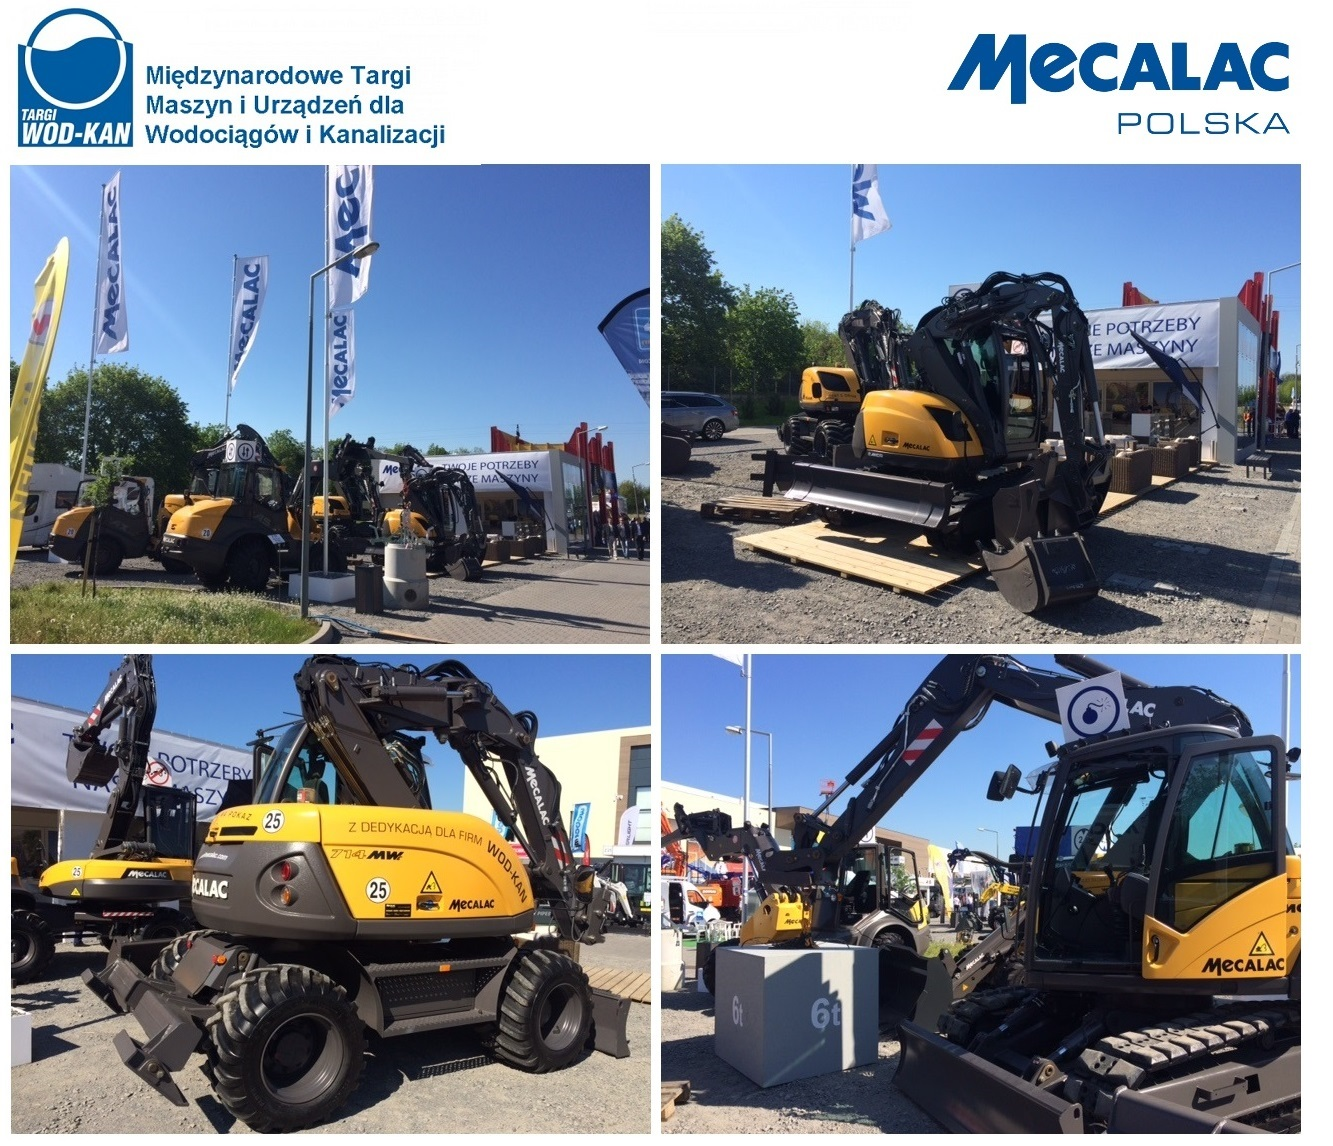 Mecalac Polska at WOD-KAN International Fair